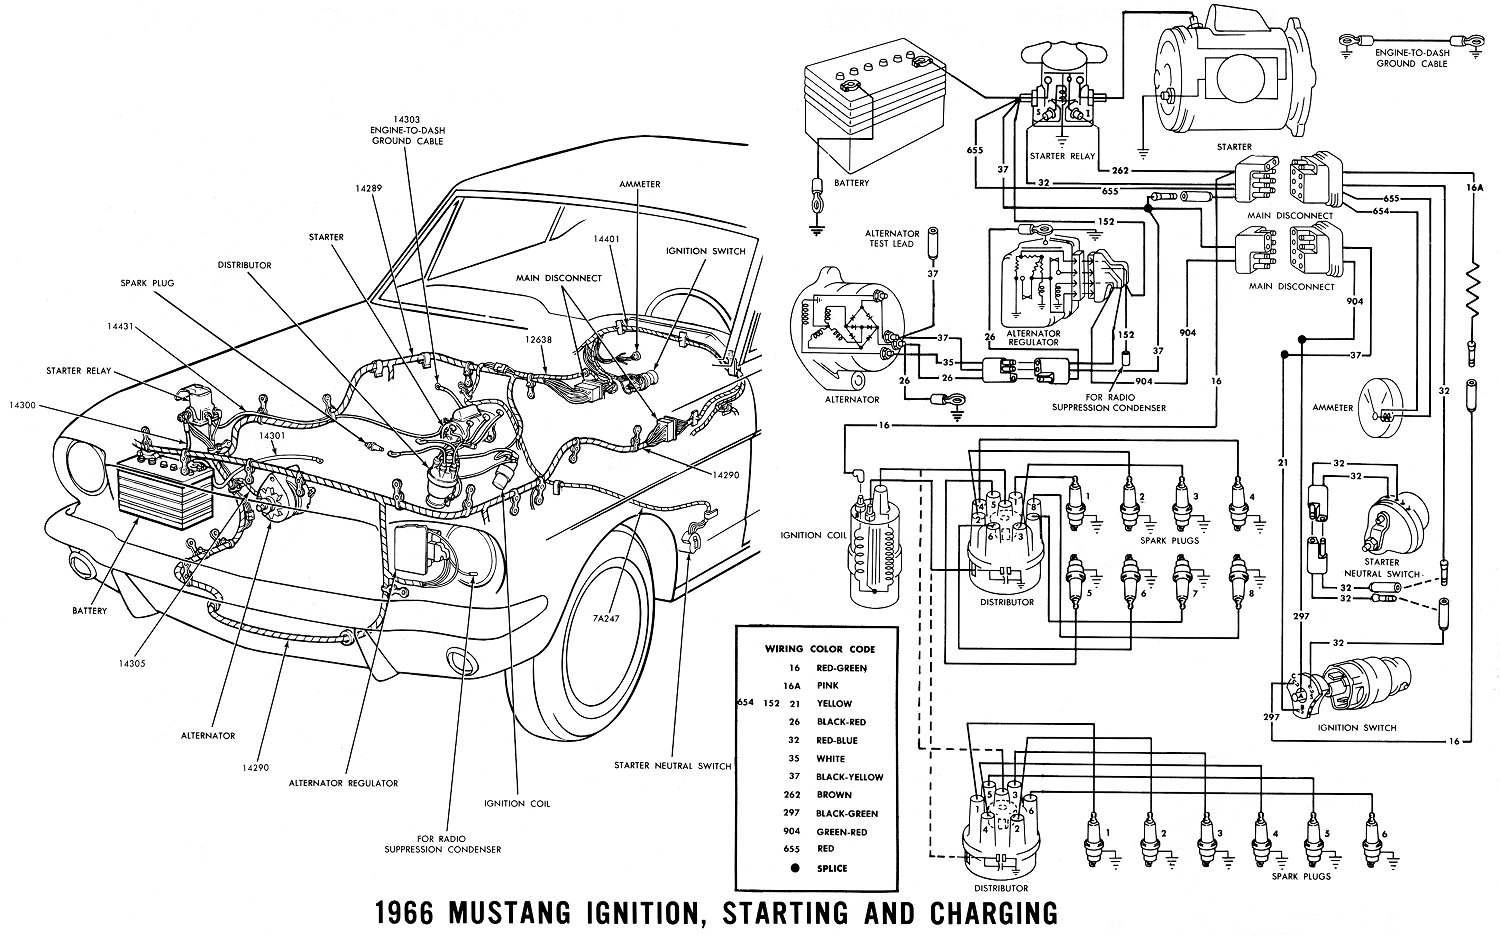 1966 Mustang Wiring Diagrams Average Joe Restoration Basic Chevy Diagram Ignition Starting And Charging